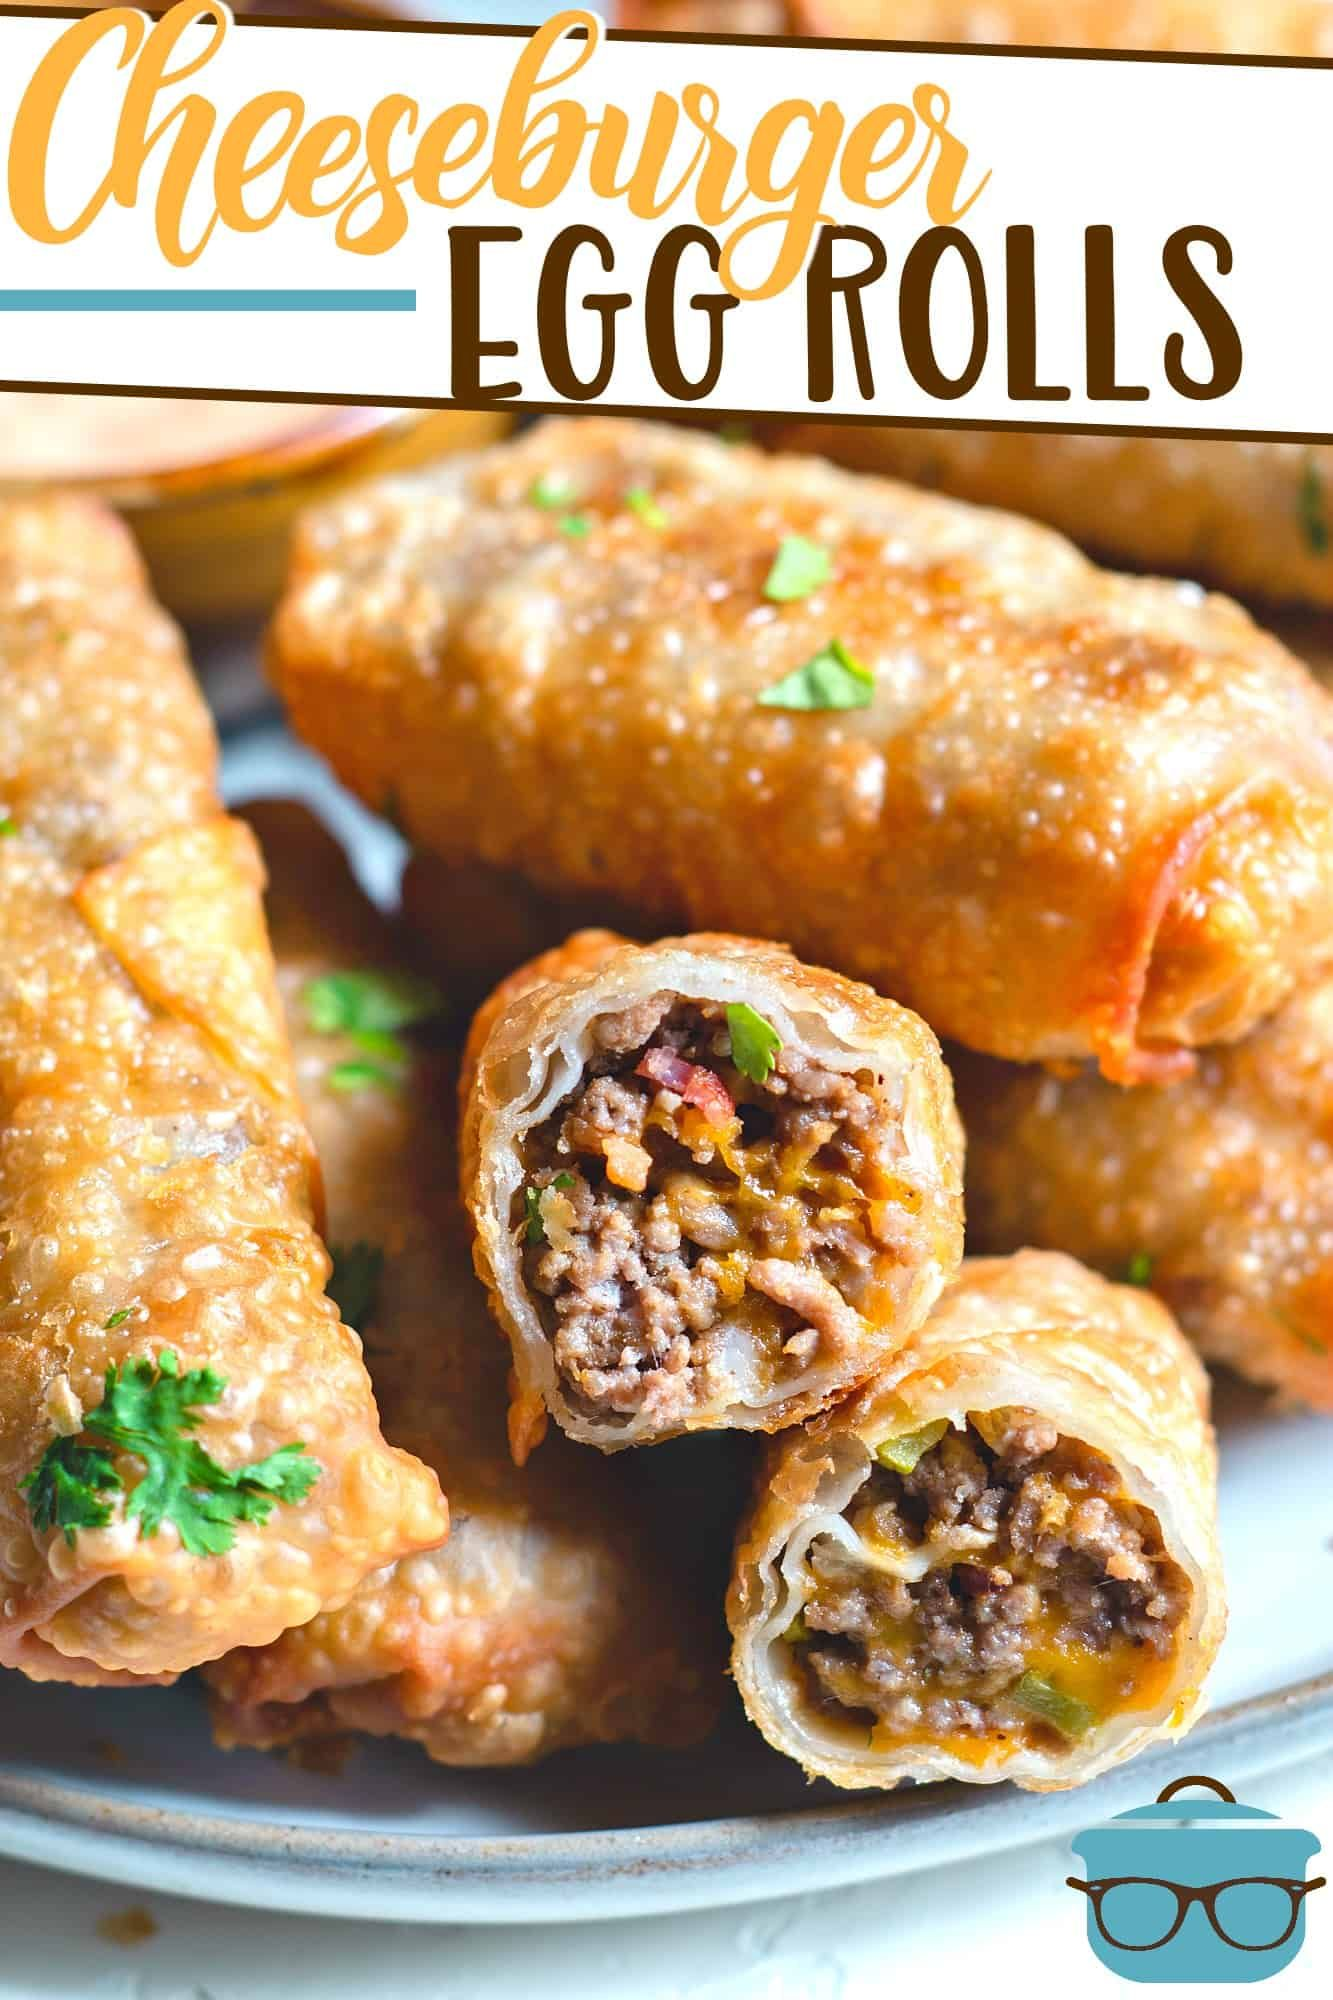 Cheeseburger Egg Rolls Have A Flavorful Ground Beef Filling Fried In An Egg Roll Wrapper And Served With A Creamy Burger In 2020 Cooking Recipes Food Recipies Recipes